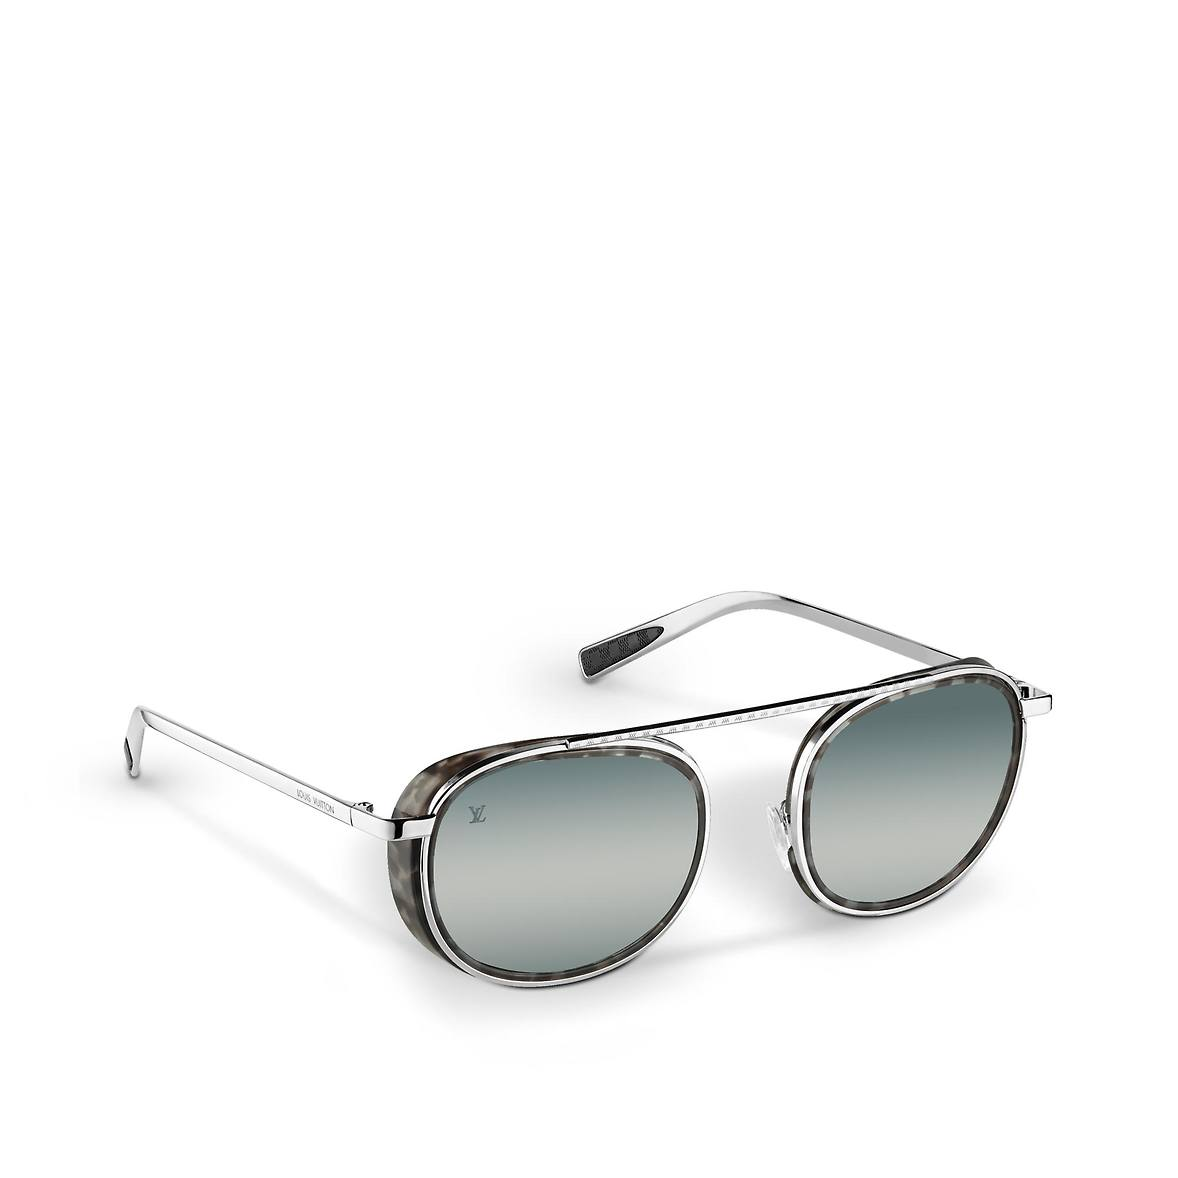 Occhiali da sole uomo aviator Louis Vuitton